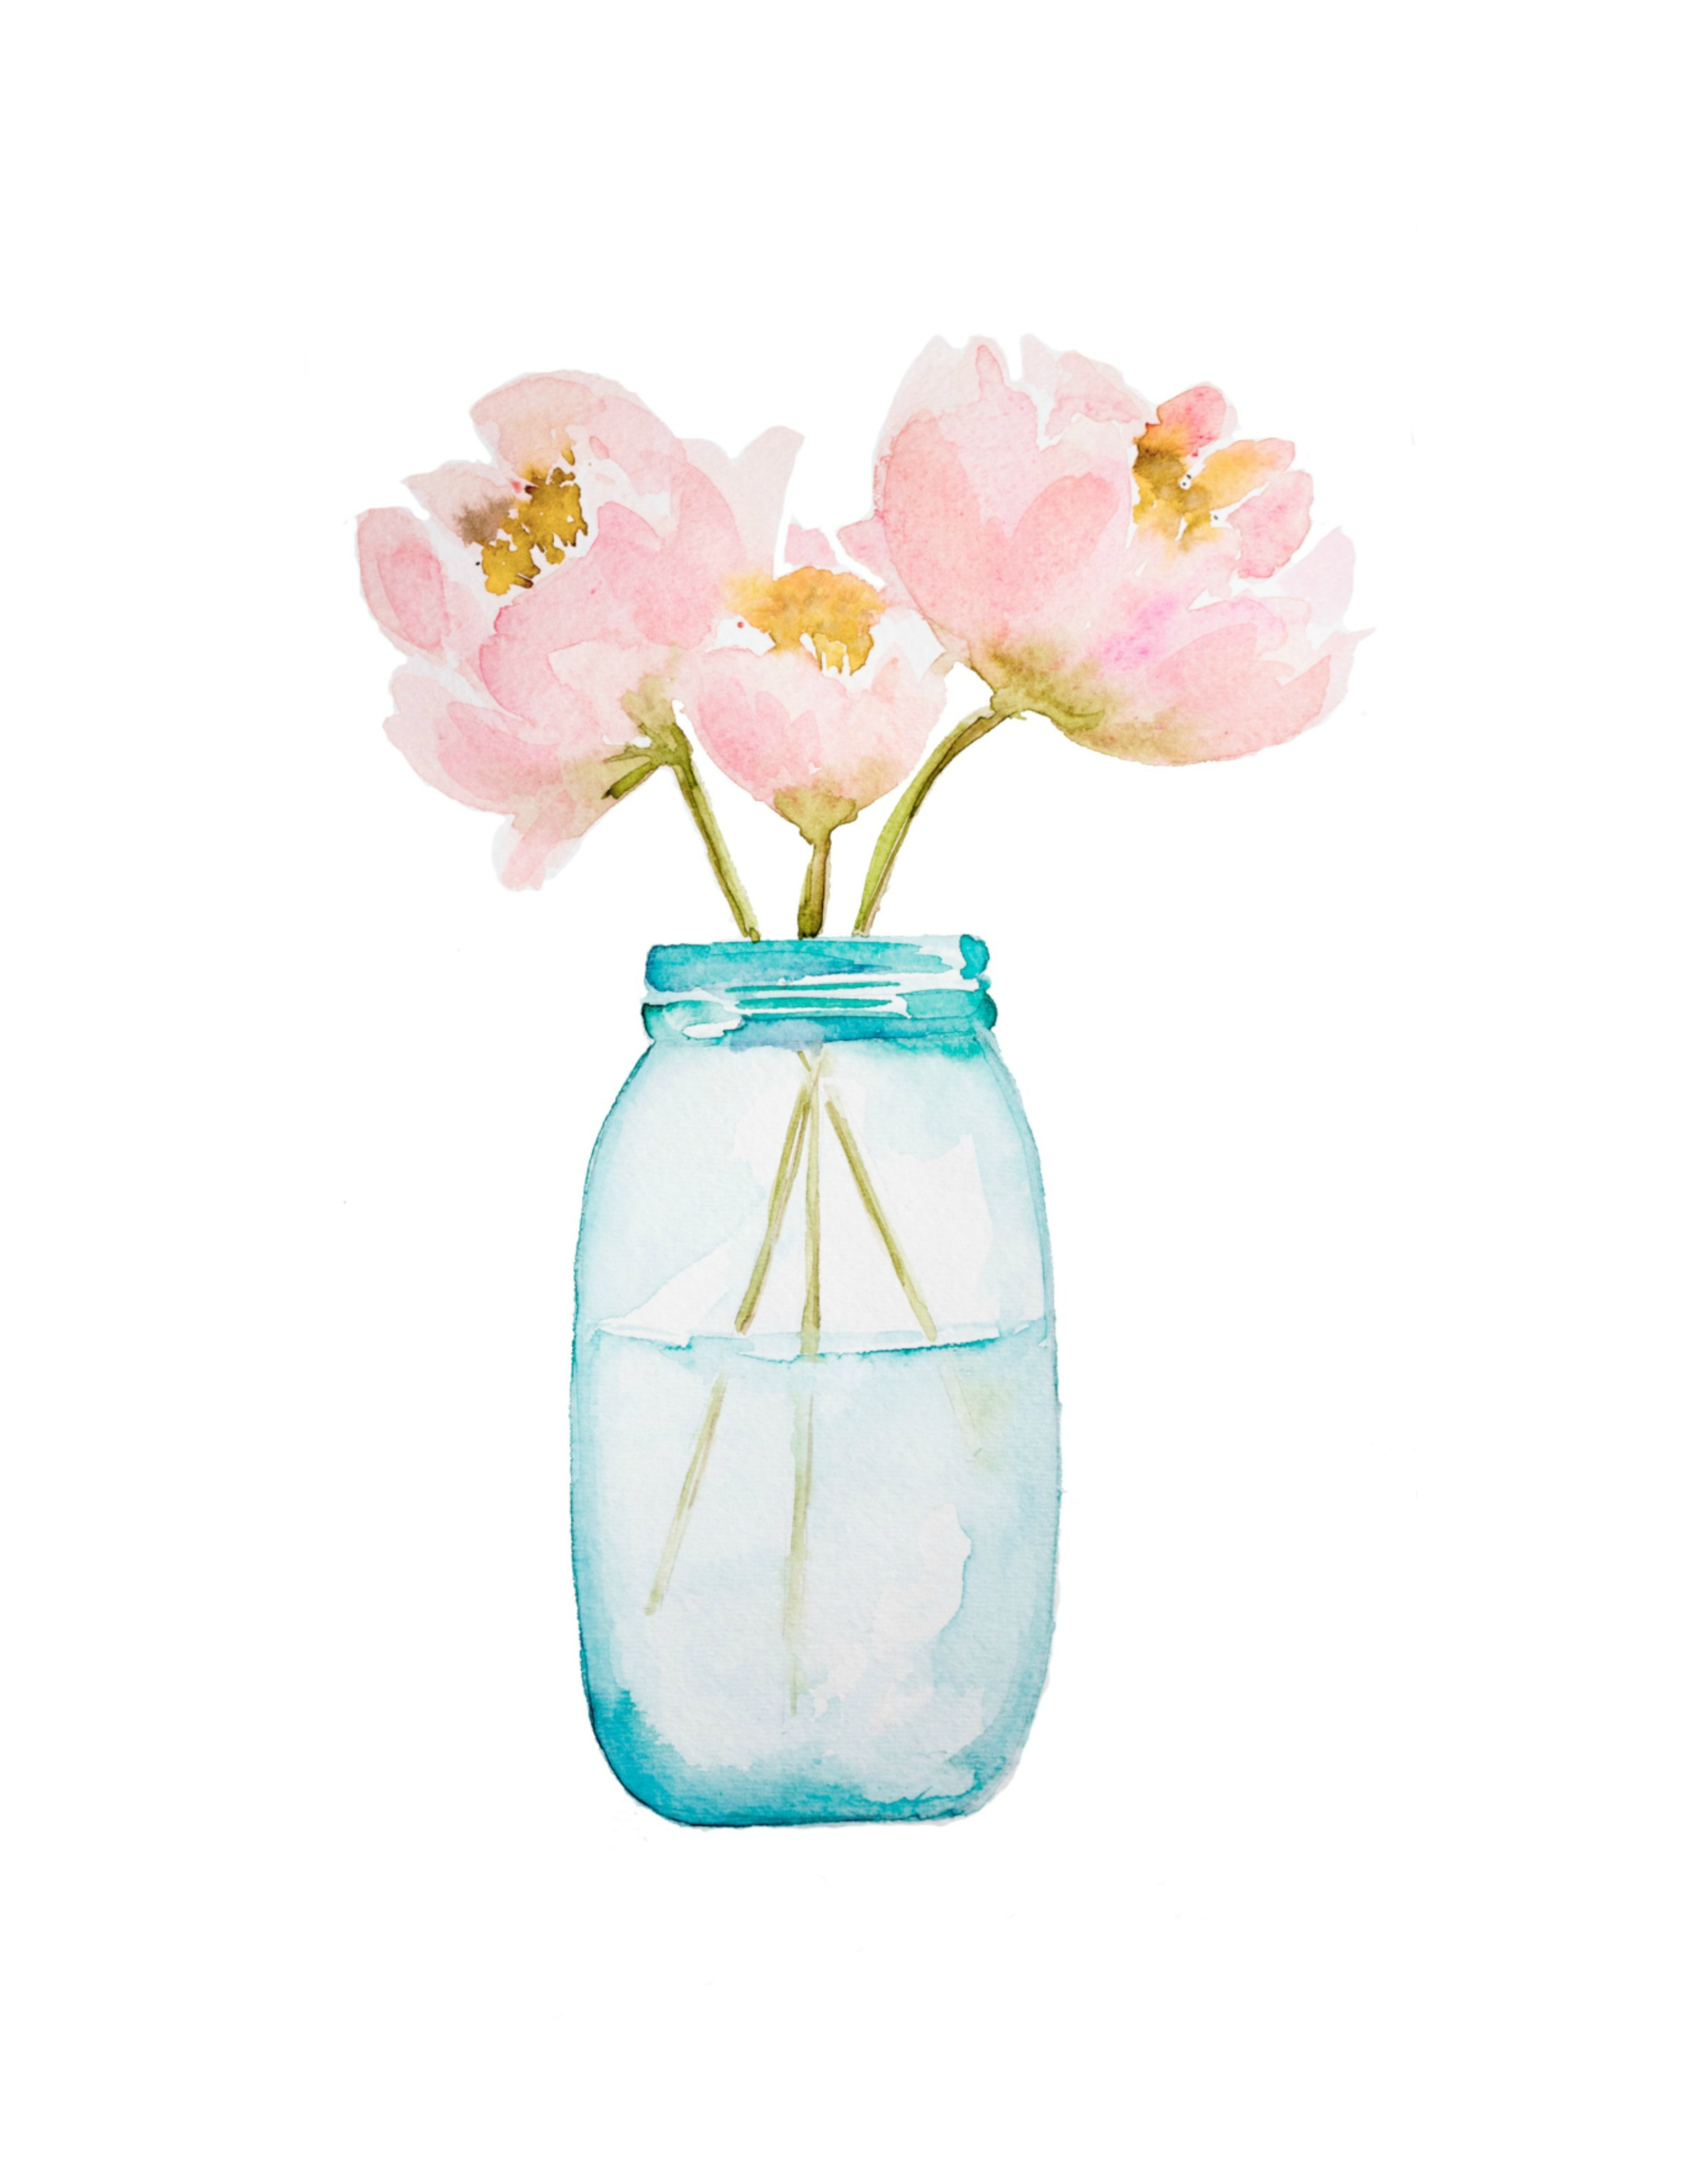 flower vase illustration with 3d Paper Flower Art With Free Watercolor Printable on Home As Sketch Vase in addition Rub Tubes Fleurs 10 moreover Flower Pot further Kctpsde30089 Vase Flowers Happy Birthday Greeting Card By Talking Pictures Cards besides Indigo Watercolor Floral Design.